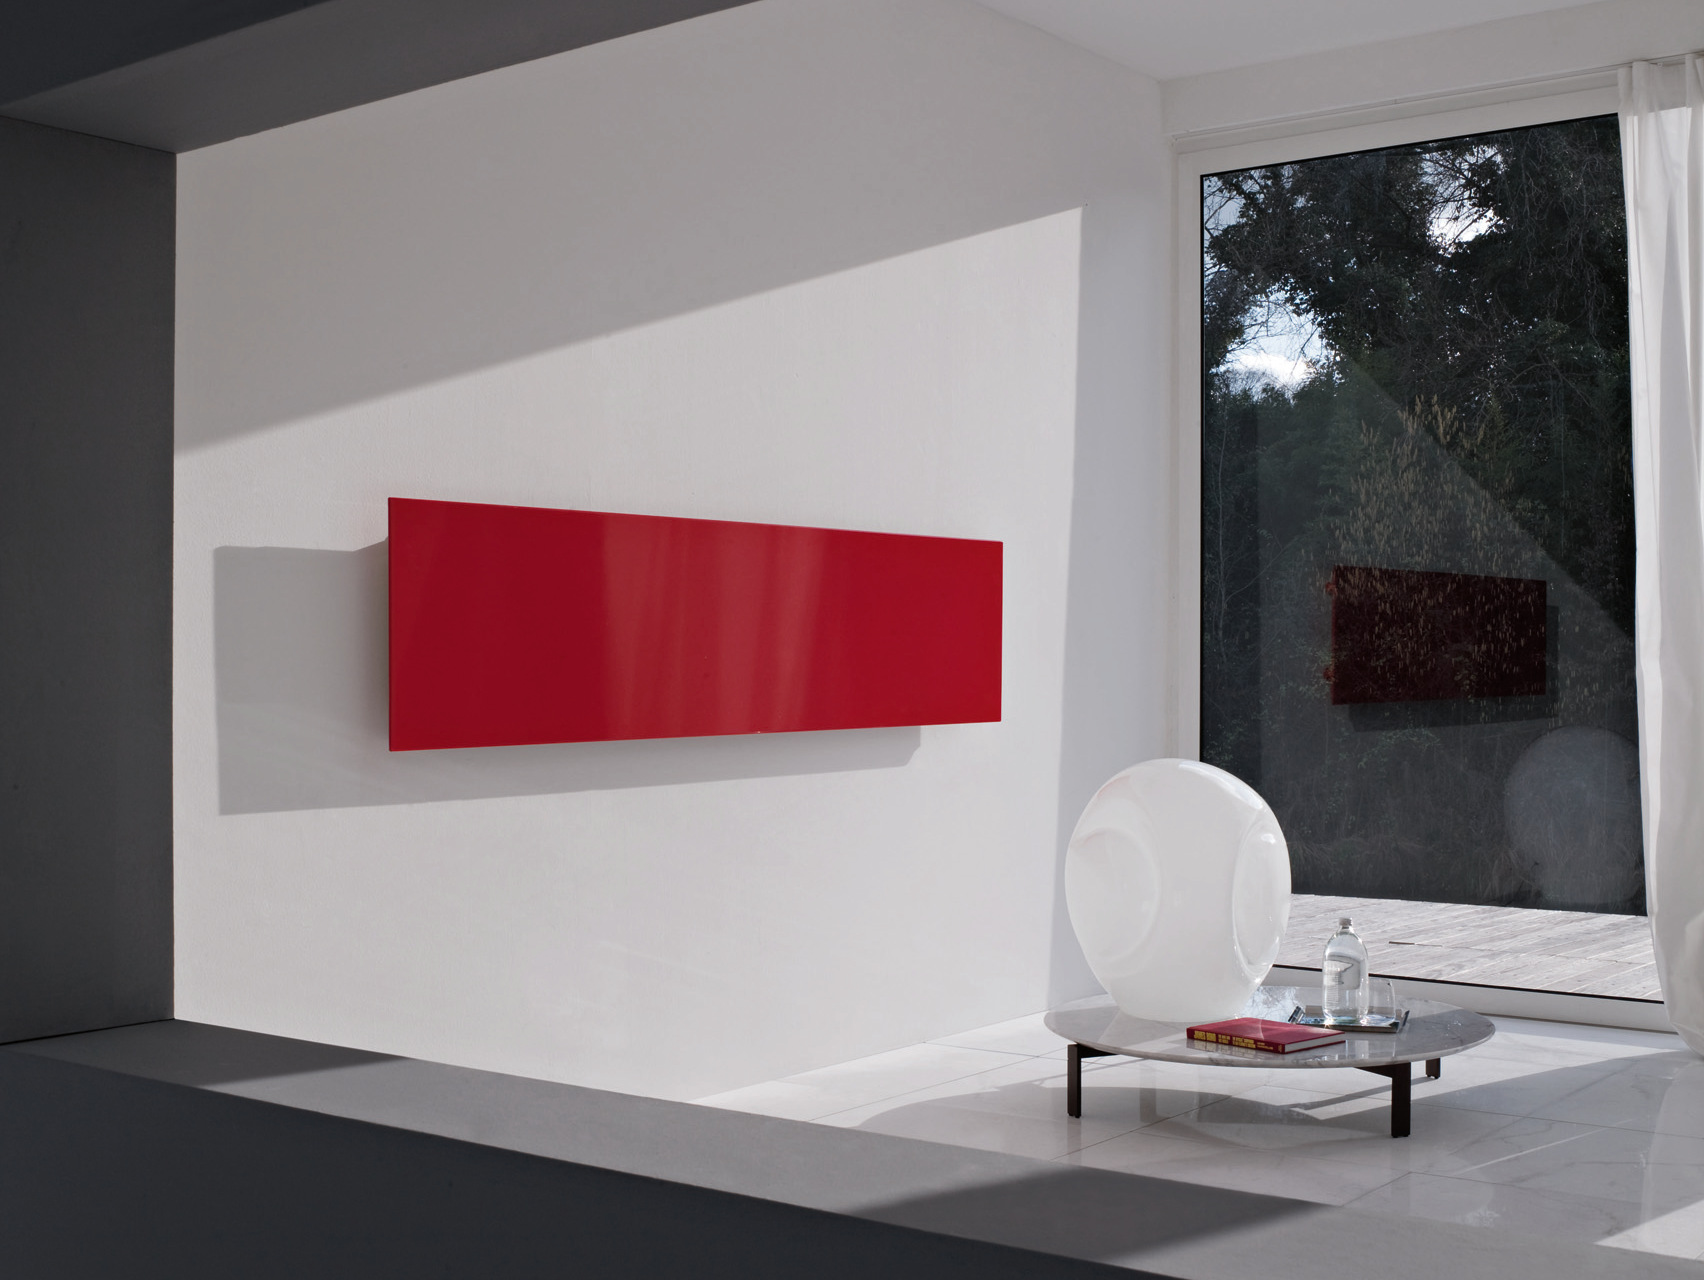 Square termoarredo orizzontale by tubes radiatori design - Termoarredo orizzontale bagno ...